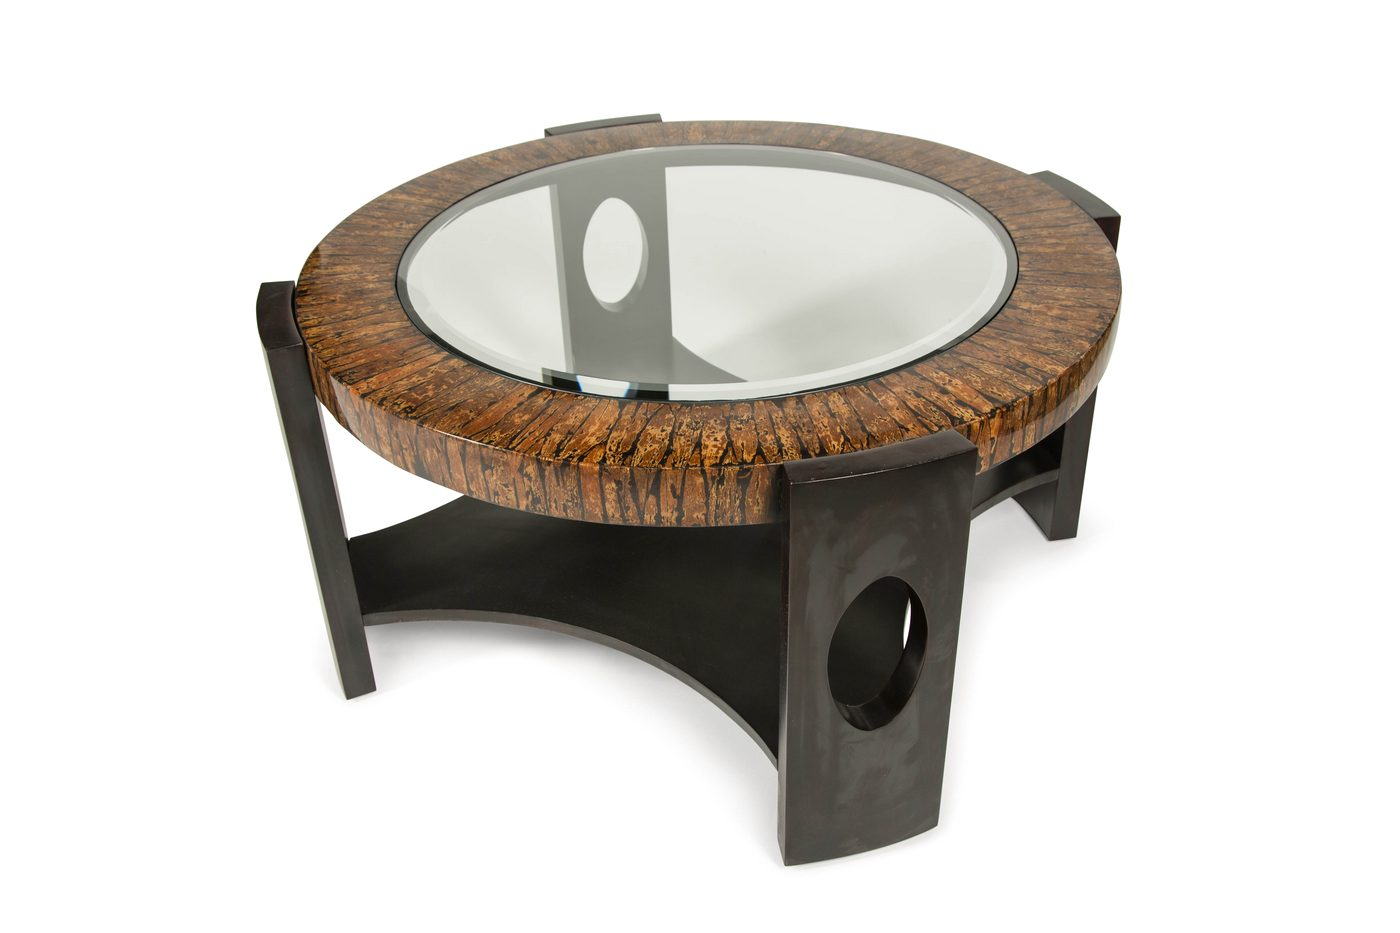 Montecristo transitional round coffee table with stone and for Round glass coffee table top